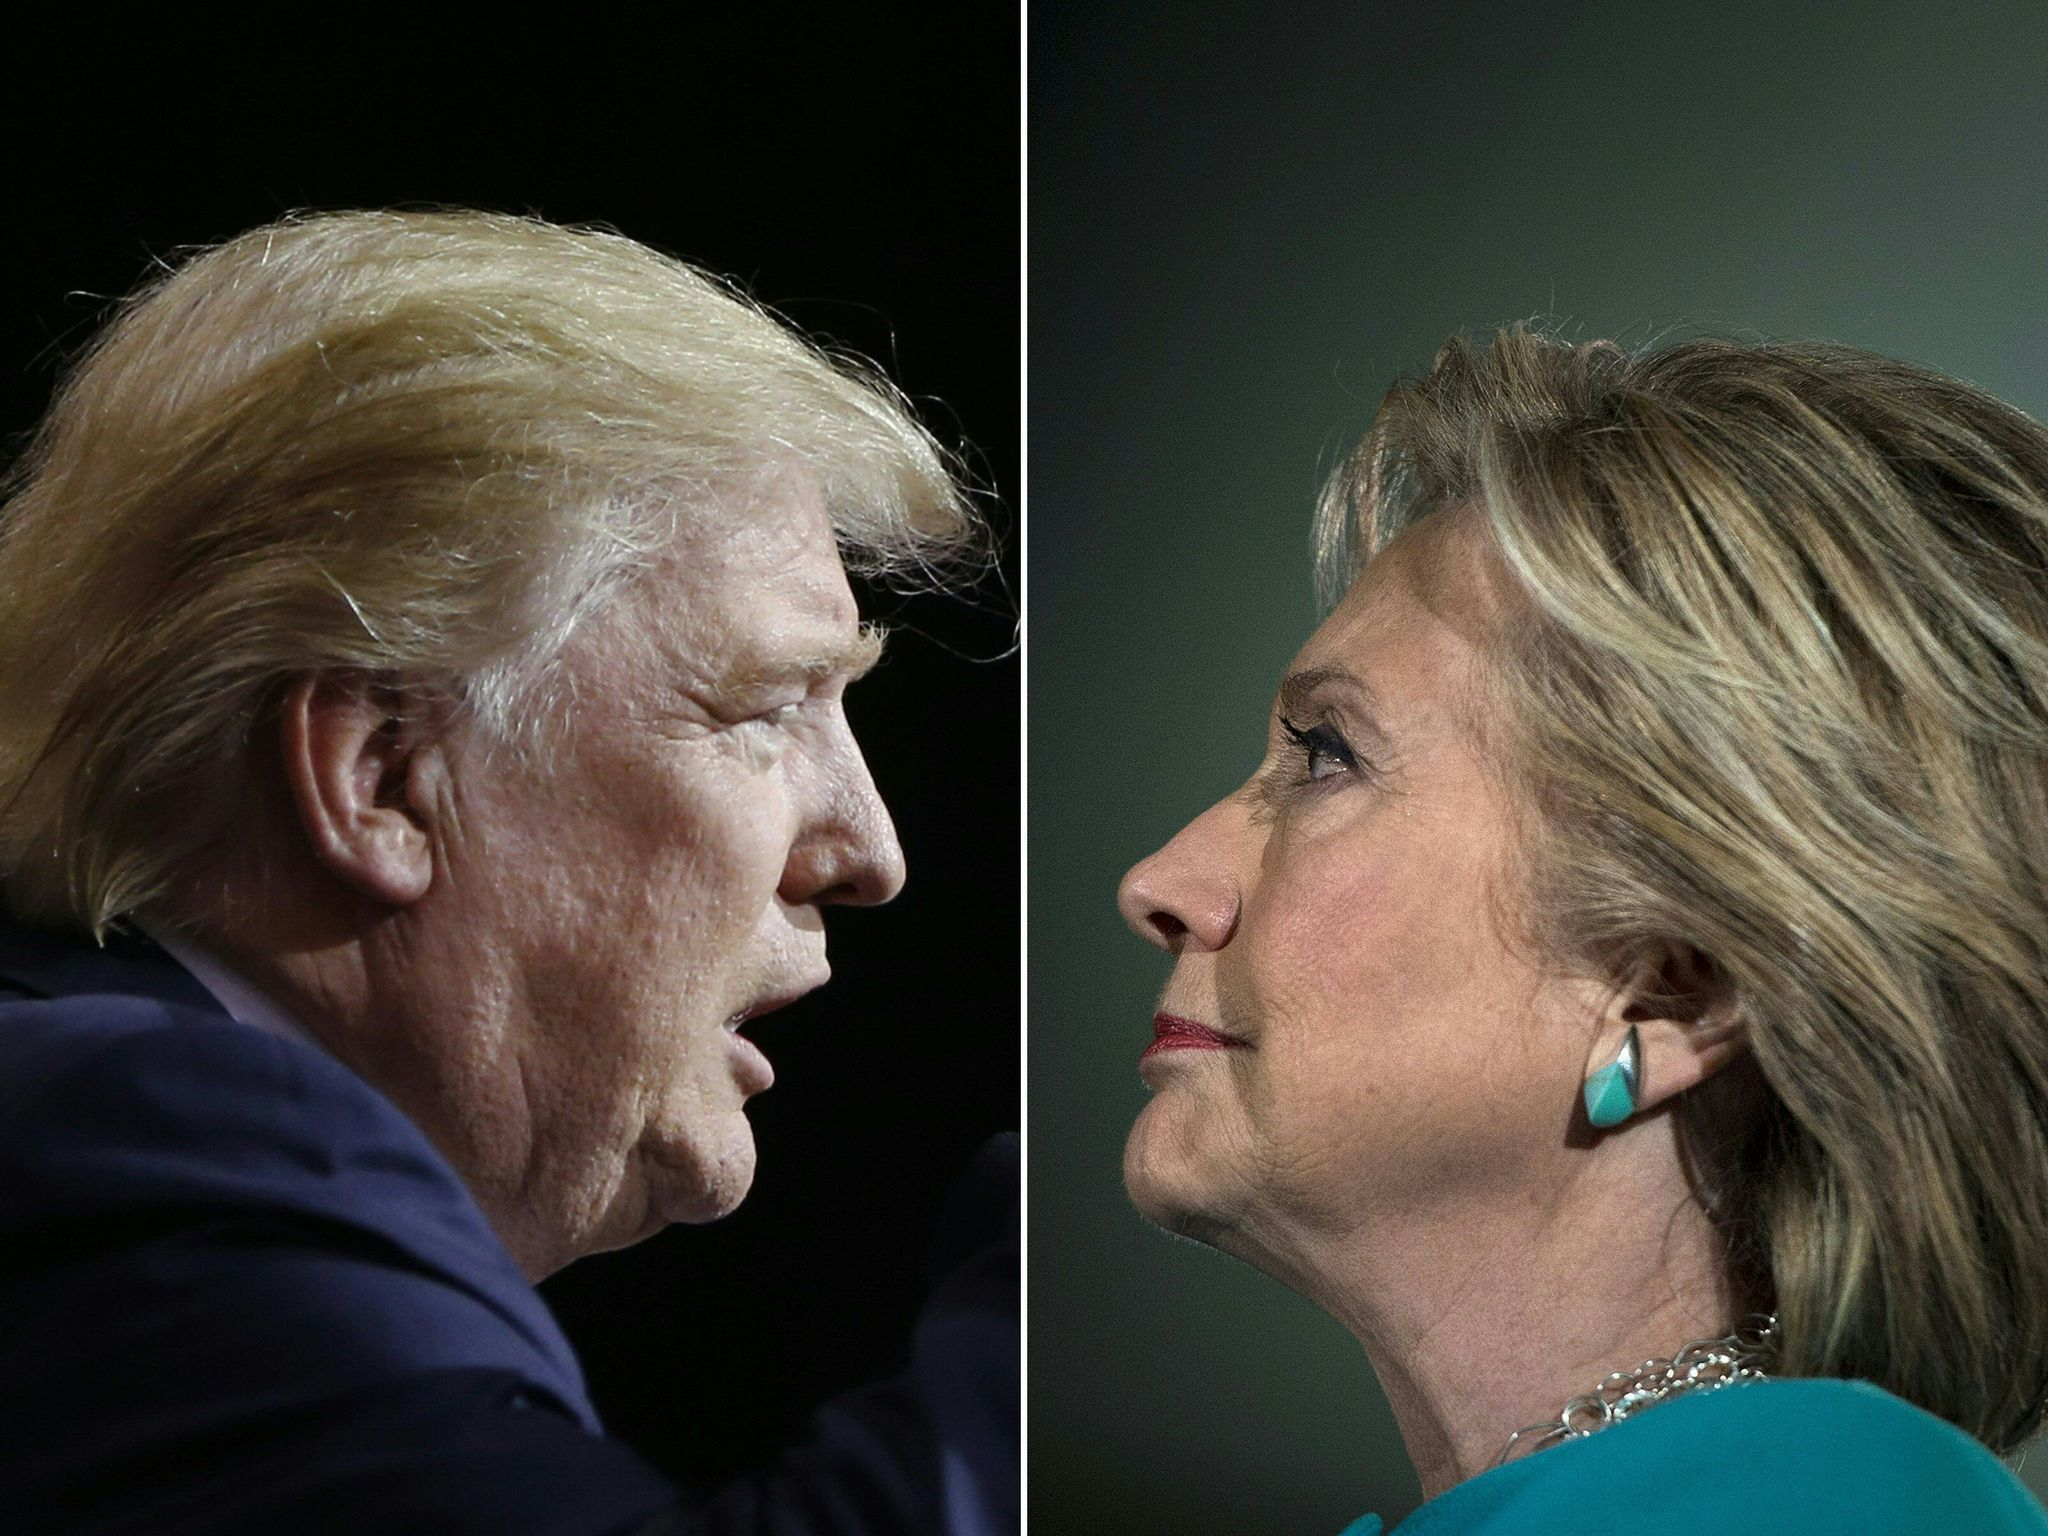 todays its our choice trump or clinton